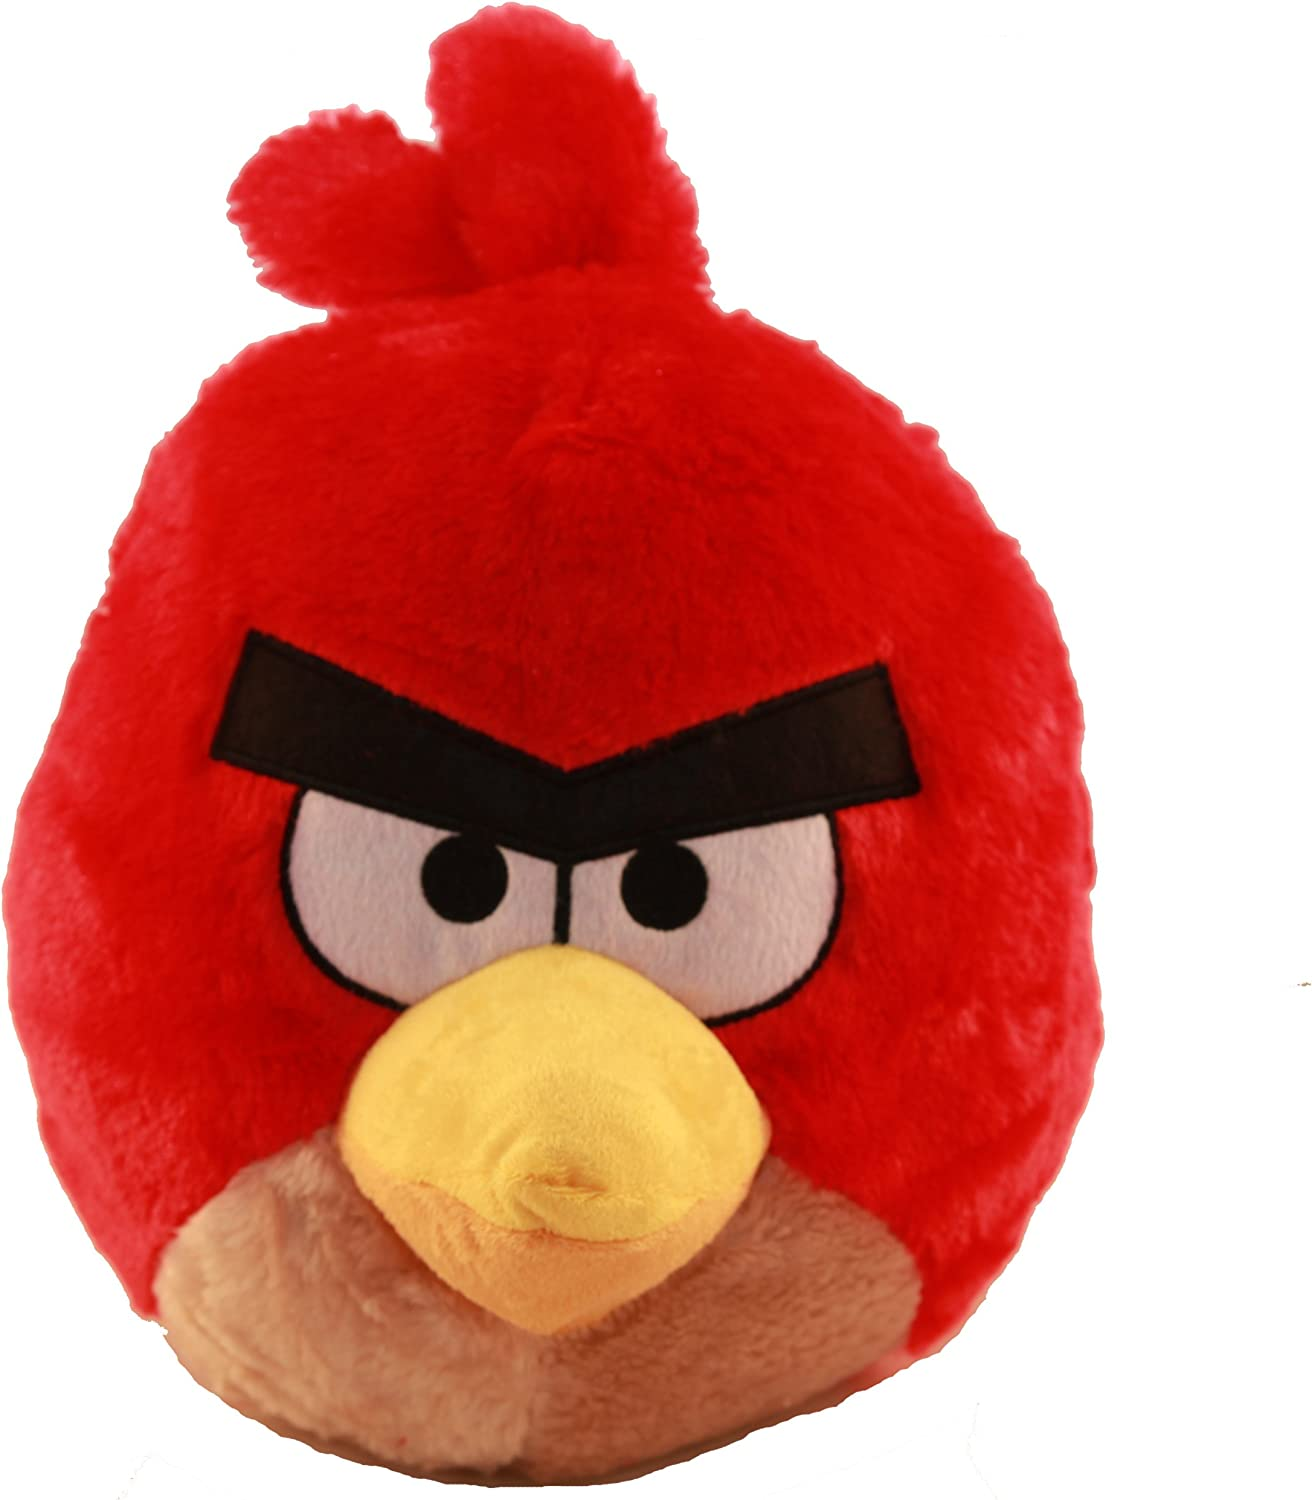 Max 83% OFF Sales of SALE items from new works Angry Birds Red Backpack Plush